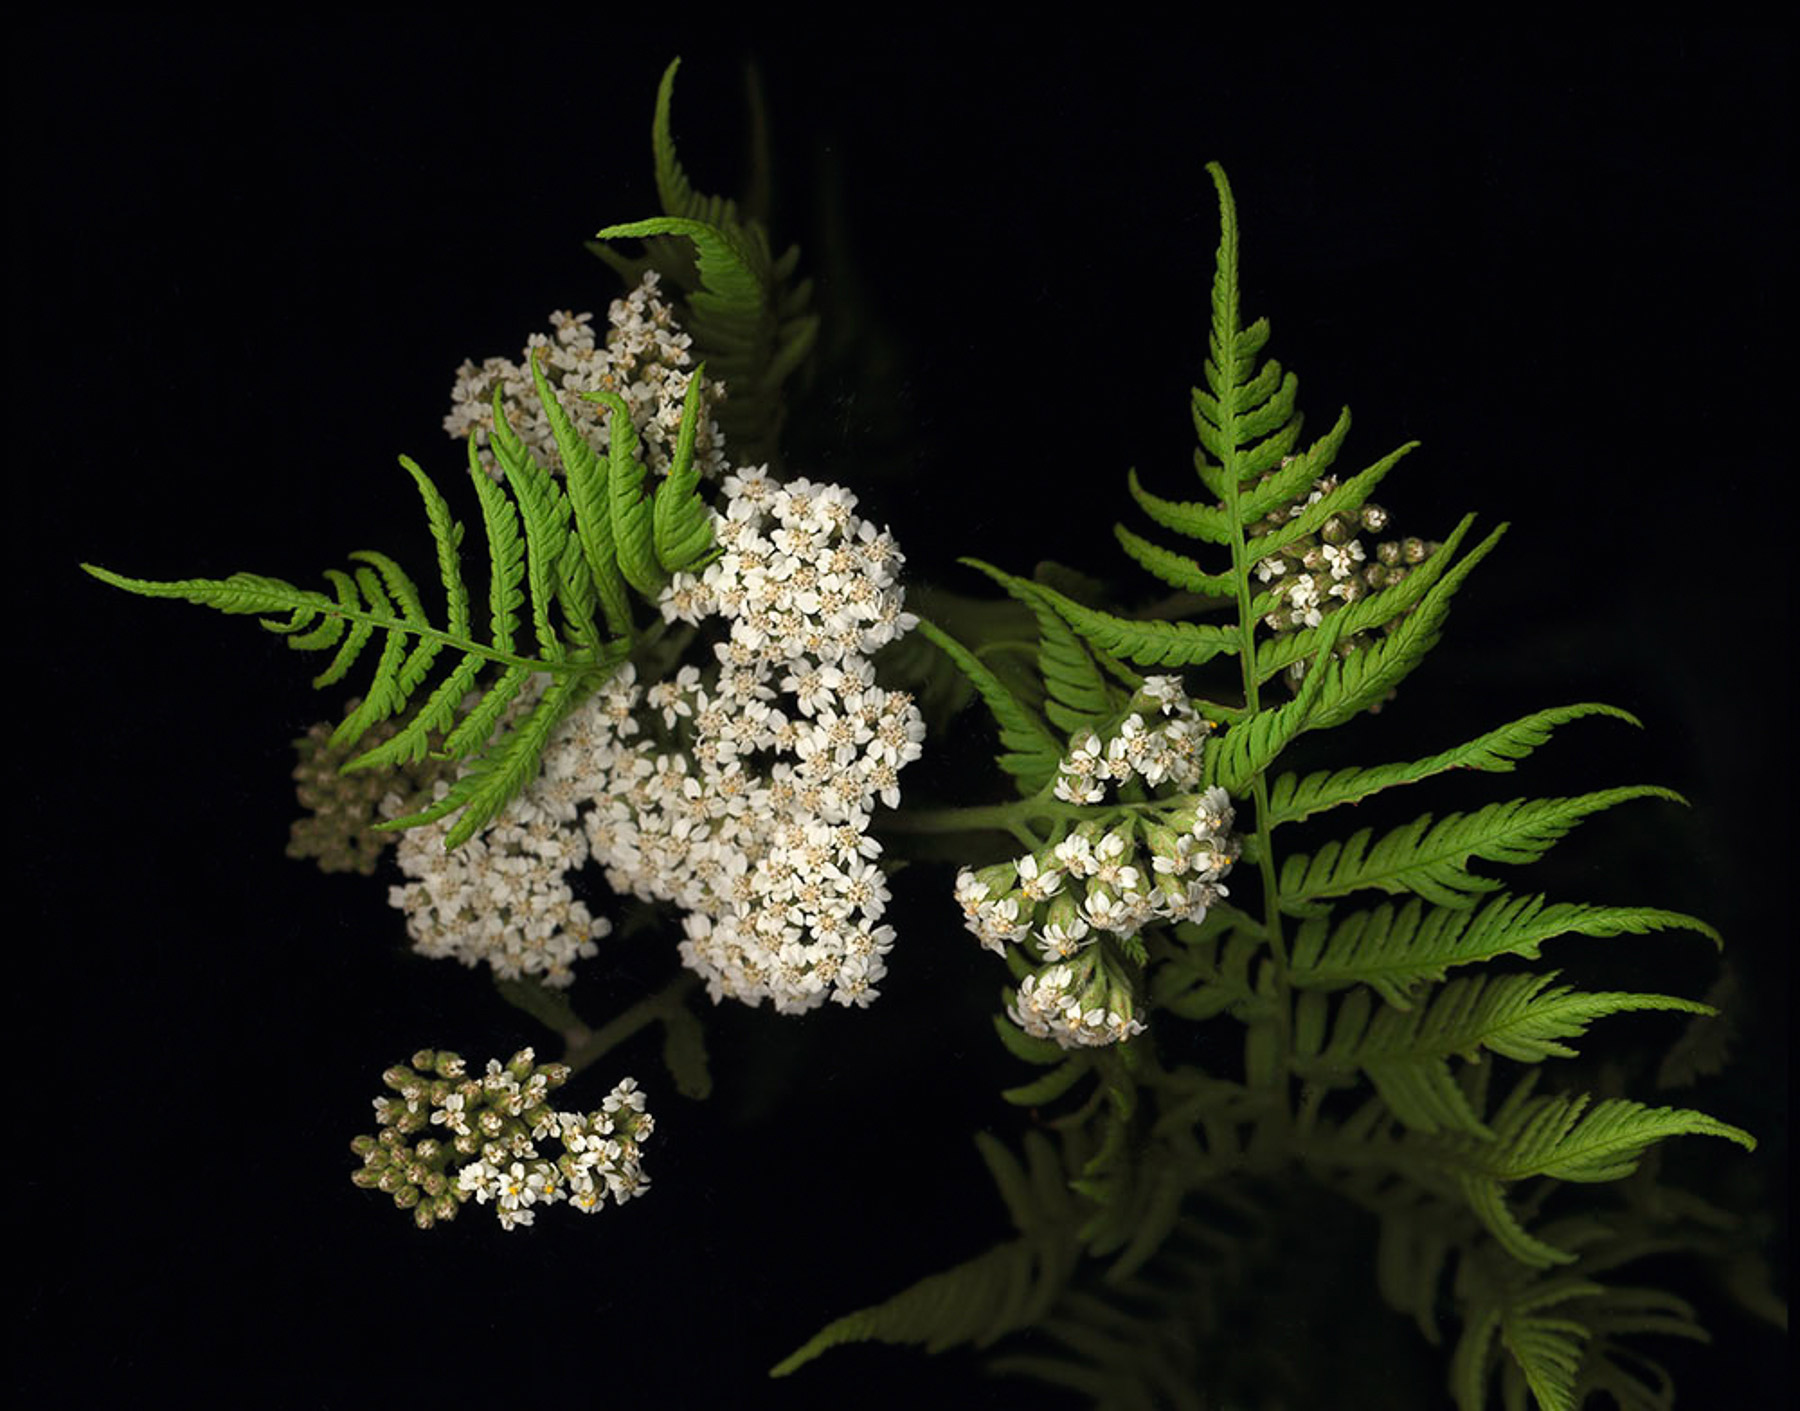 Fred Collins-Wild-Yarrow-&-Fern.jpg